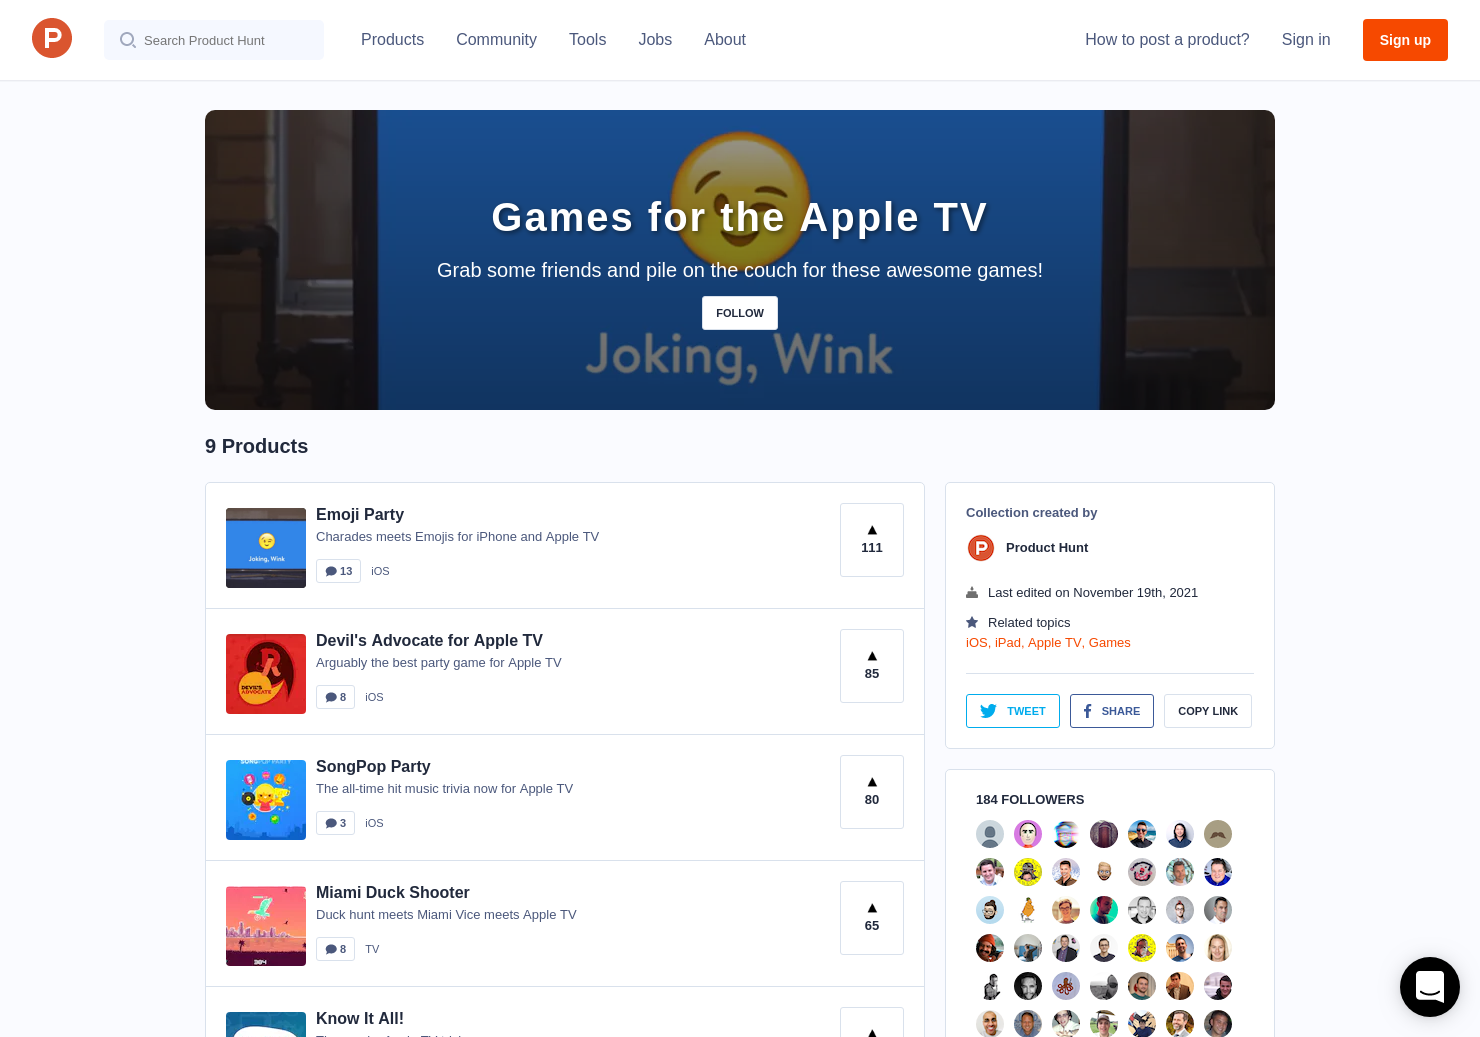 Games for the Apple TV | Product Hunt